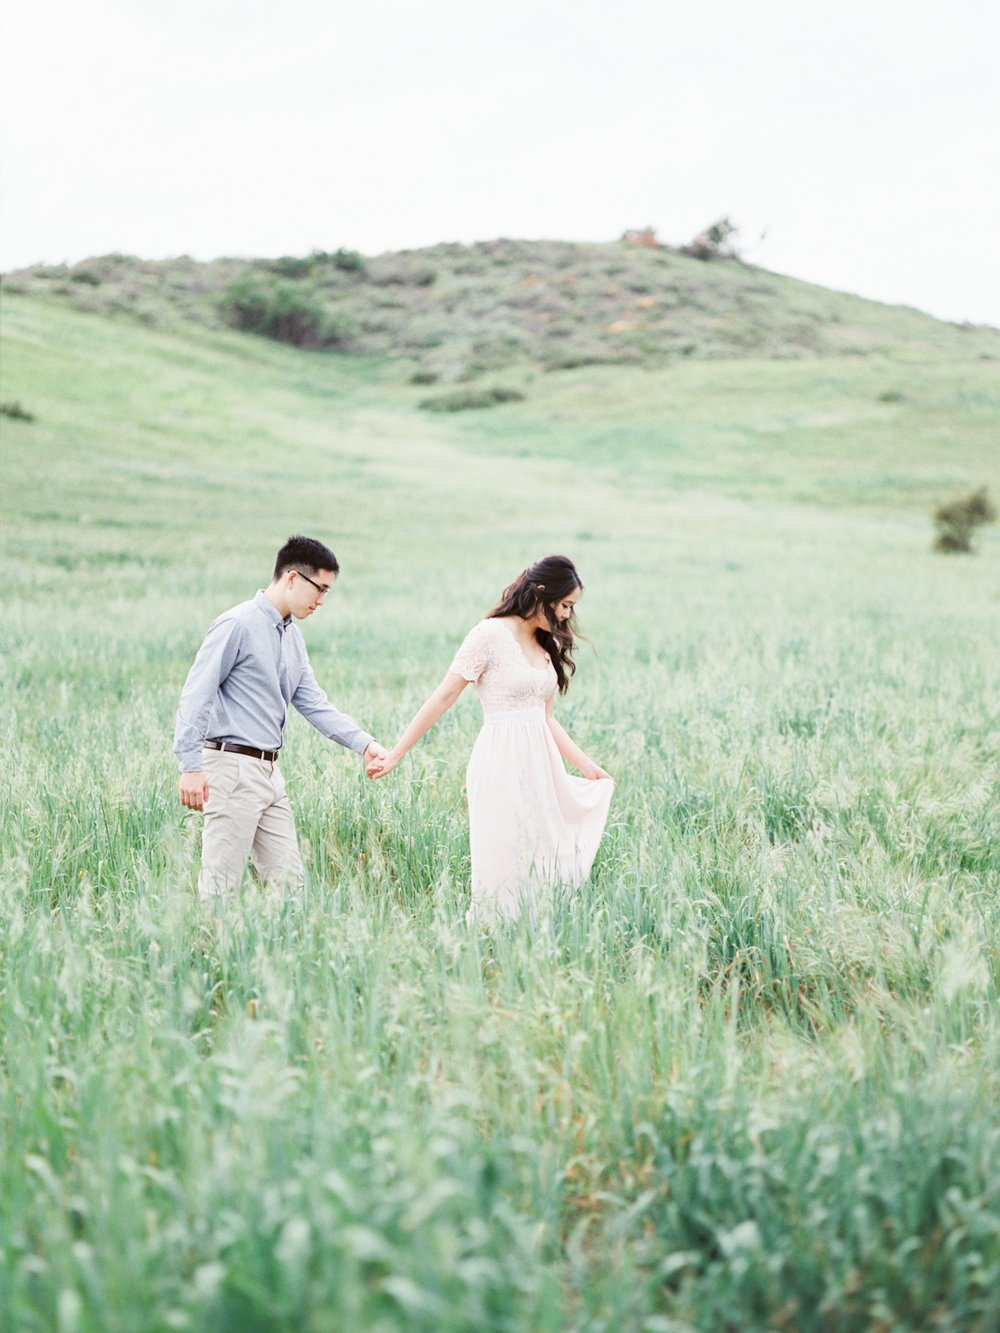 San Diego Engagement Photographer | San Diego Fine Art Photography | Whiskers and Willow Photography